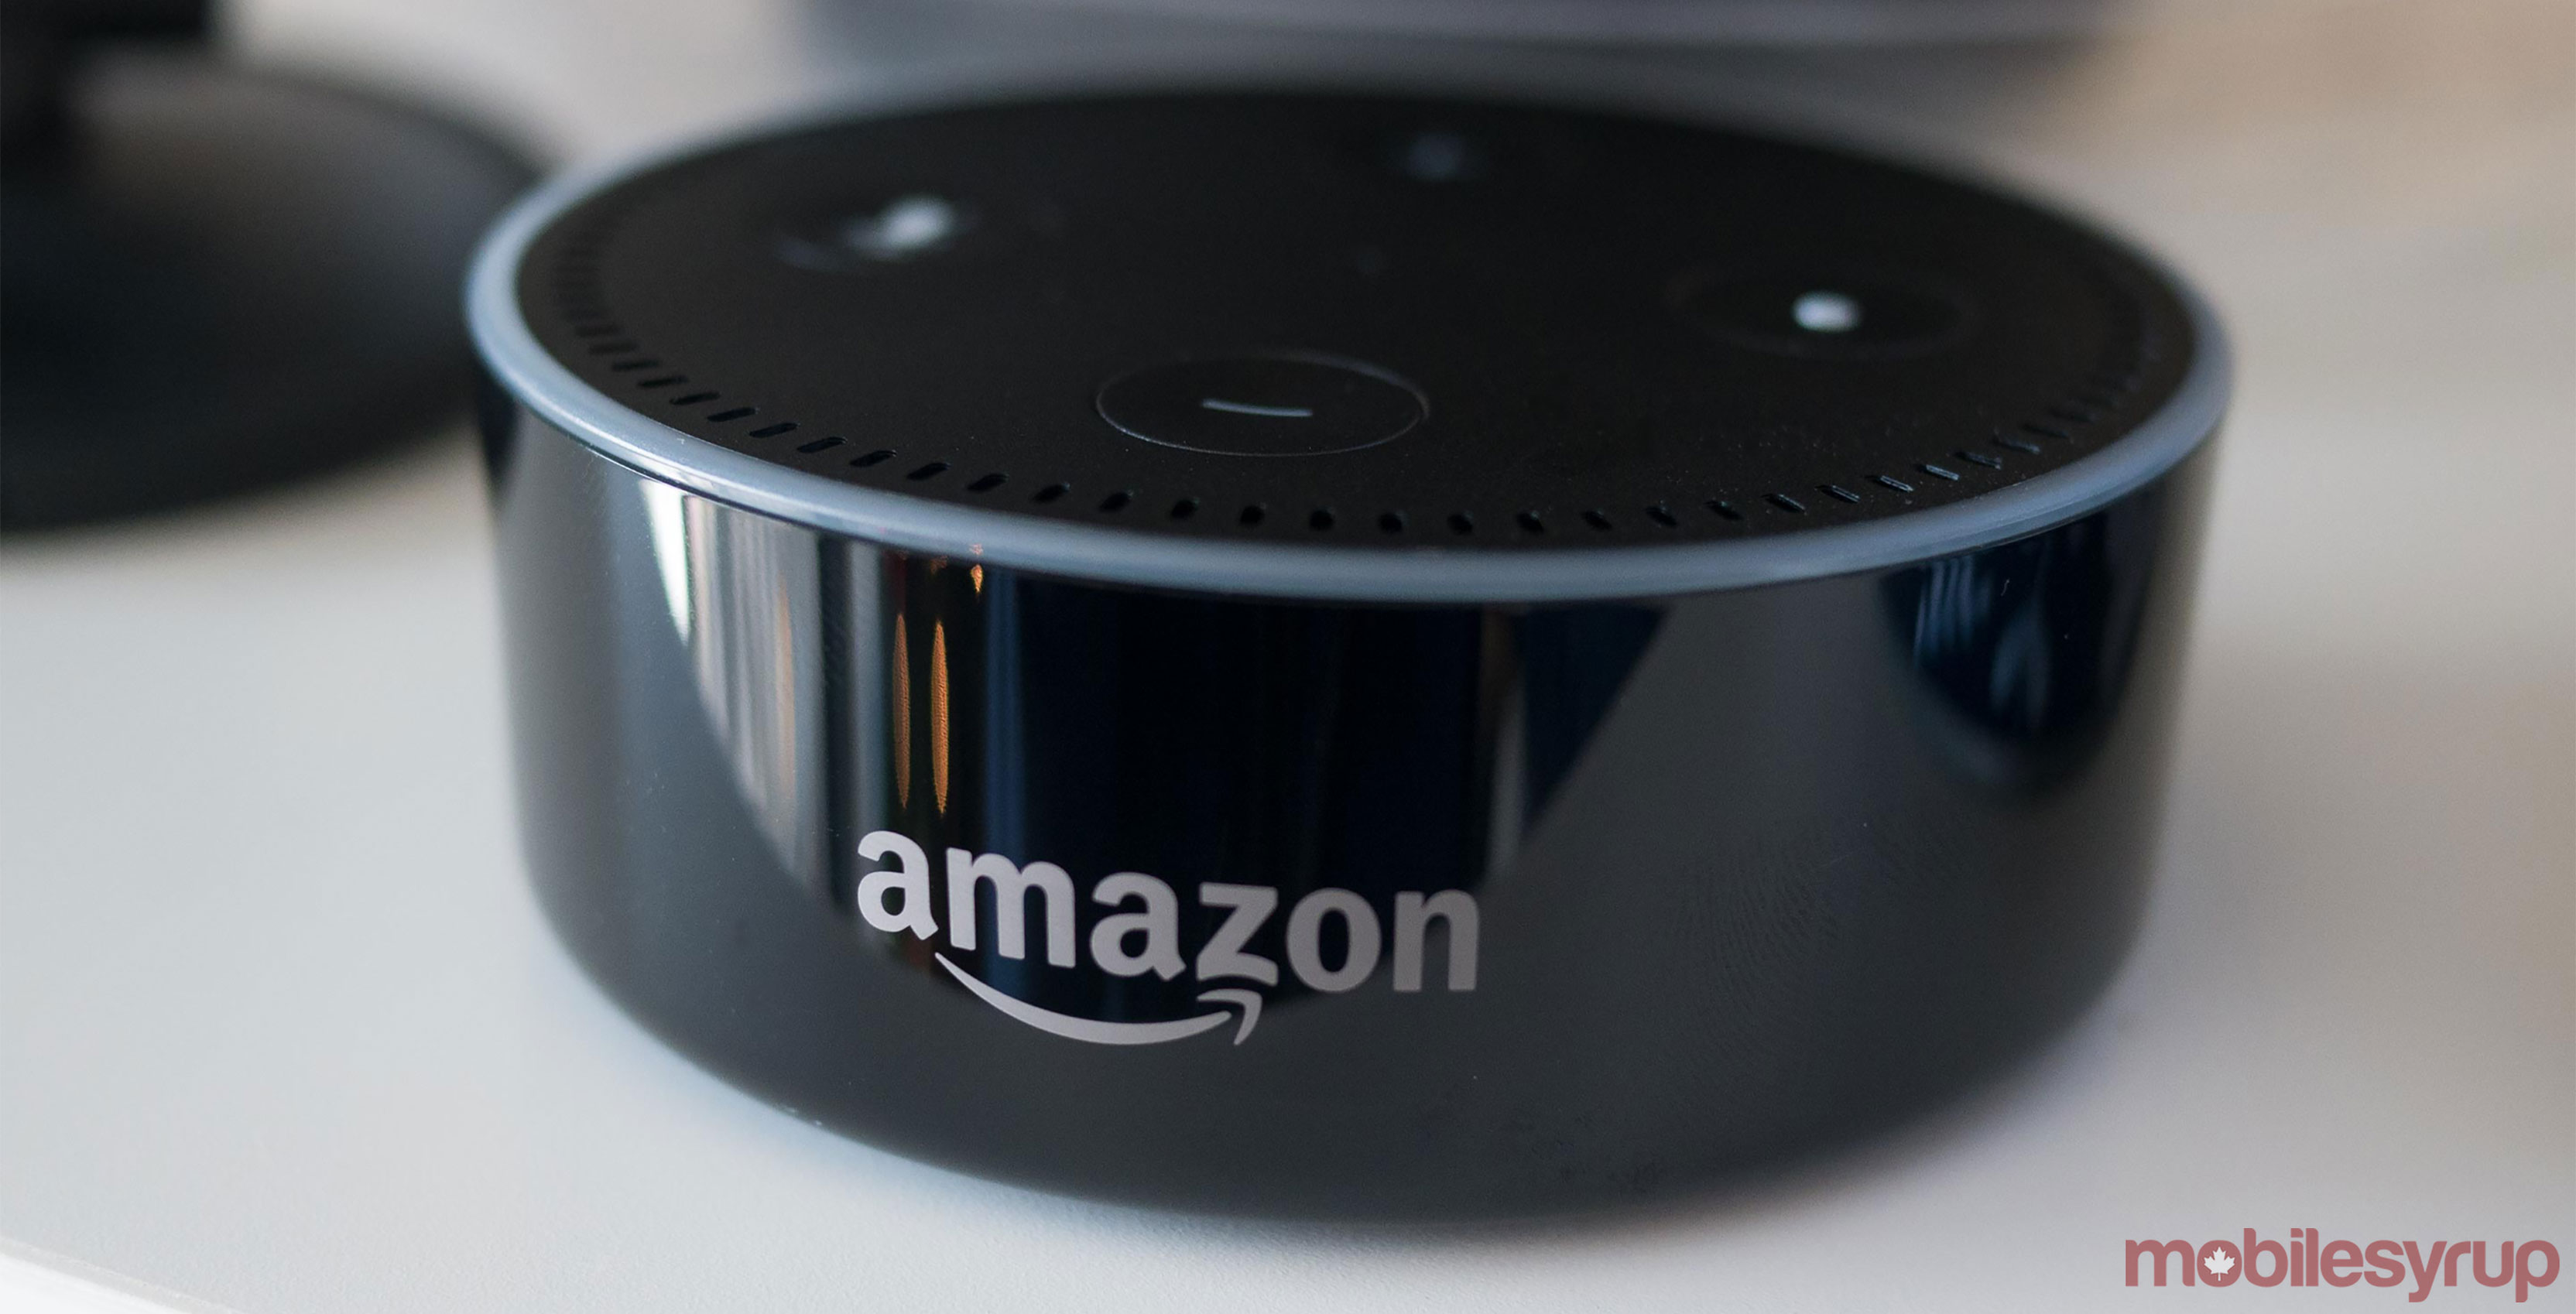 Amazon's Alexa can now detect the voice of individual users in Canada